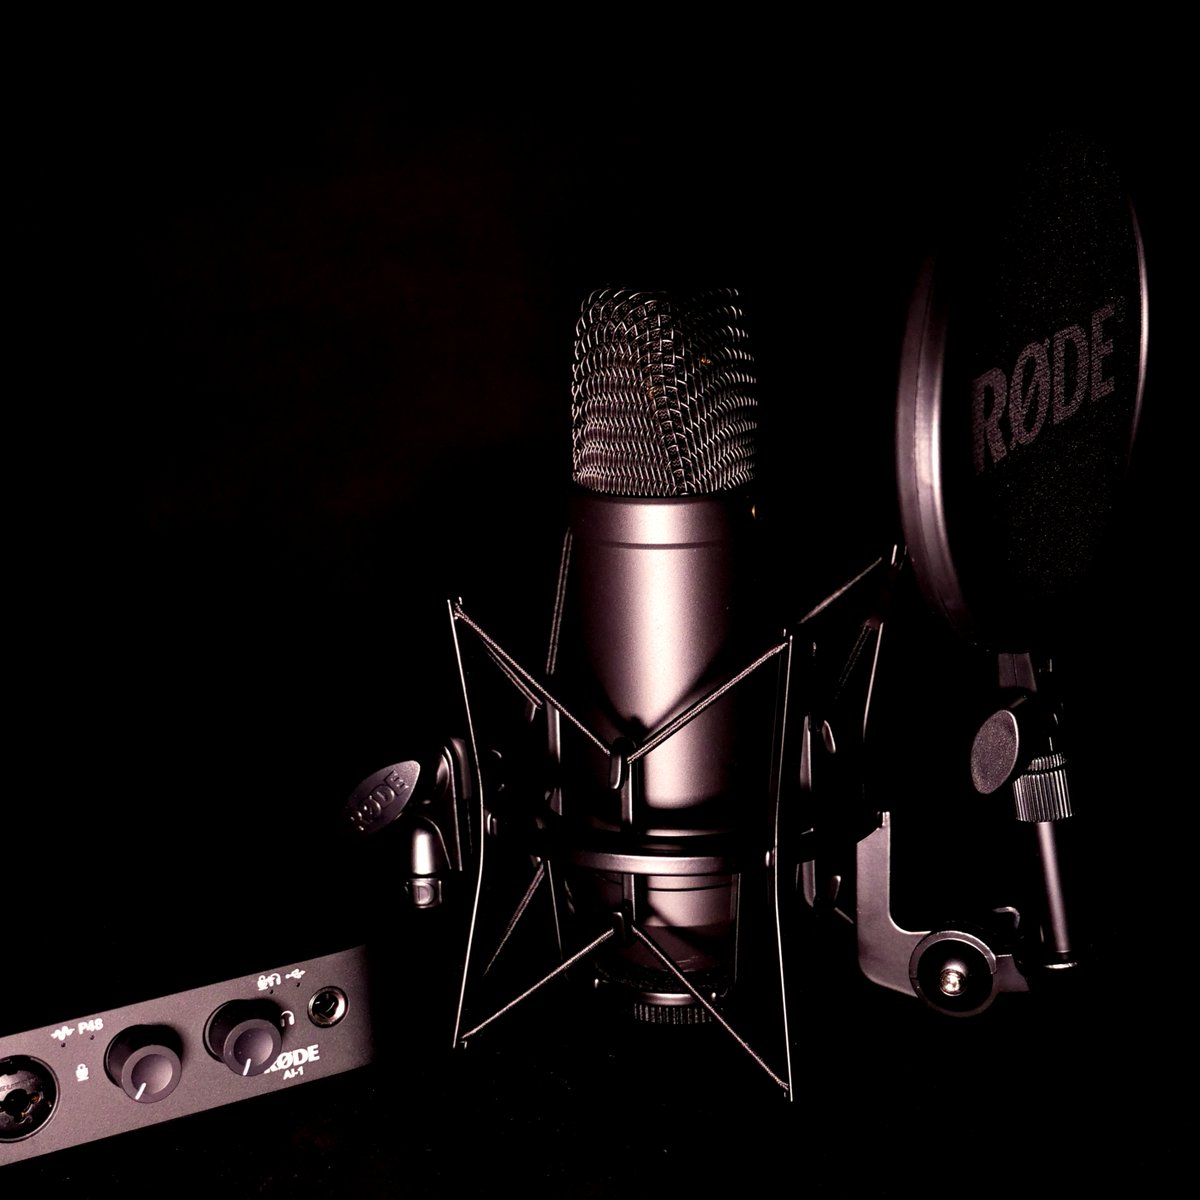 Filming and Studio Recording Packages will be made available in the first few weeks of January 2021. More details are coming soon!  #musictheory #musiceducation #vocaltraining #vocalcoach #singers #musicians #singinglessons #singing #singingwarmups #warmups #onlinelessons https://t.co/qMI8zTHS2n